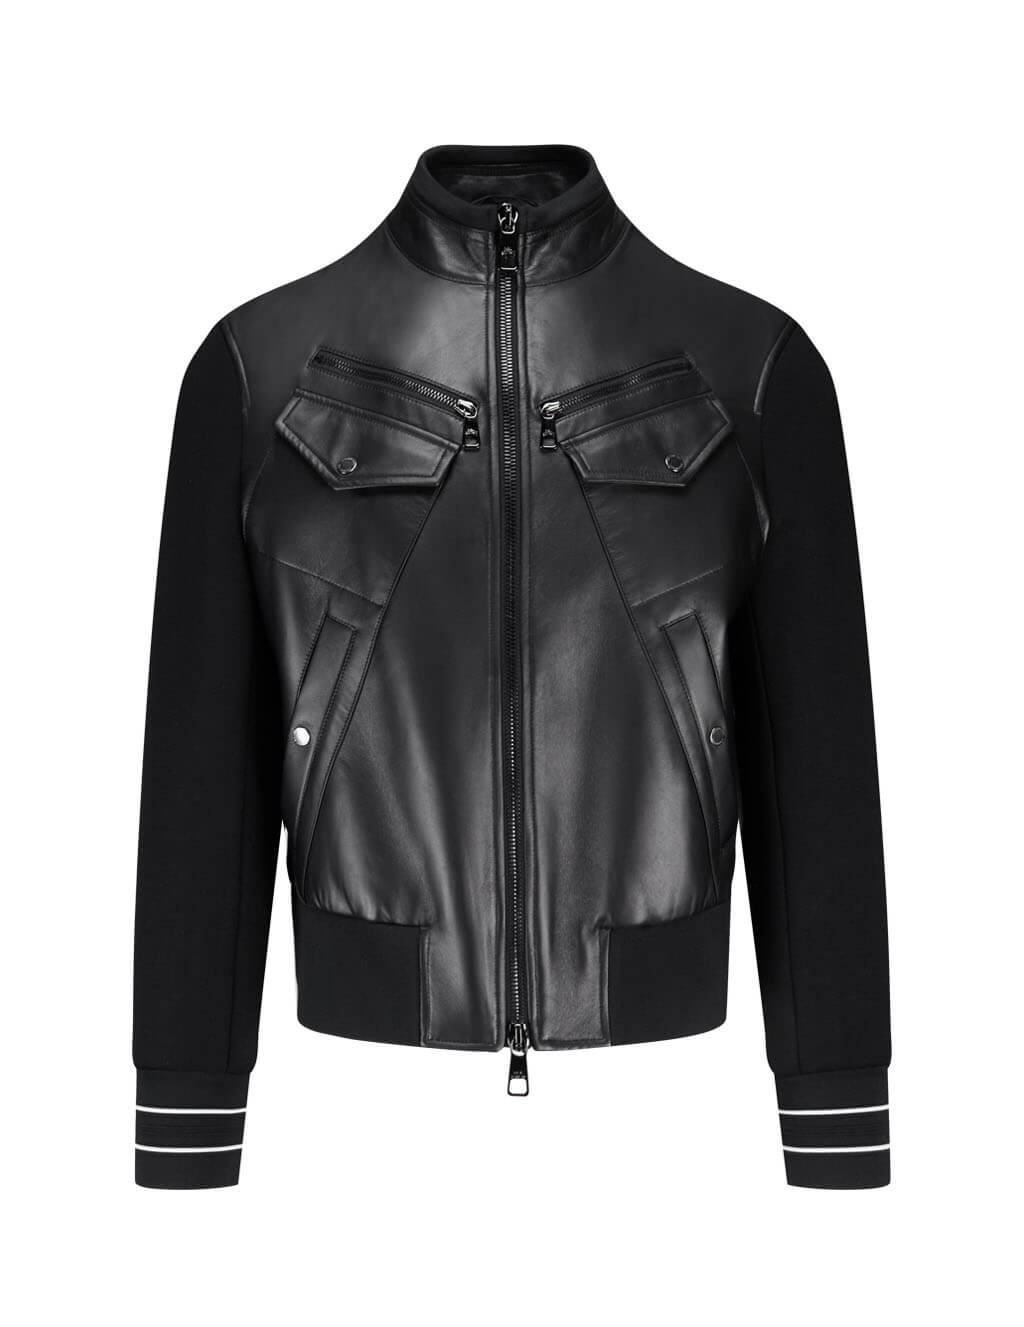 Neil Barrett Men's Giulio Fashion Black Leather Insert Jacket PBPE648C-P700C 2361